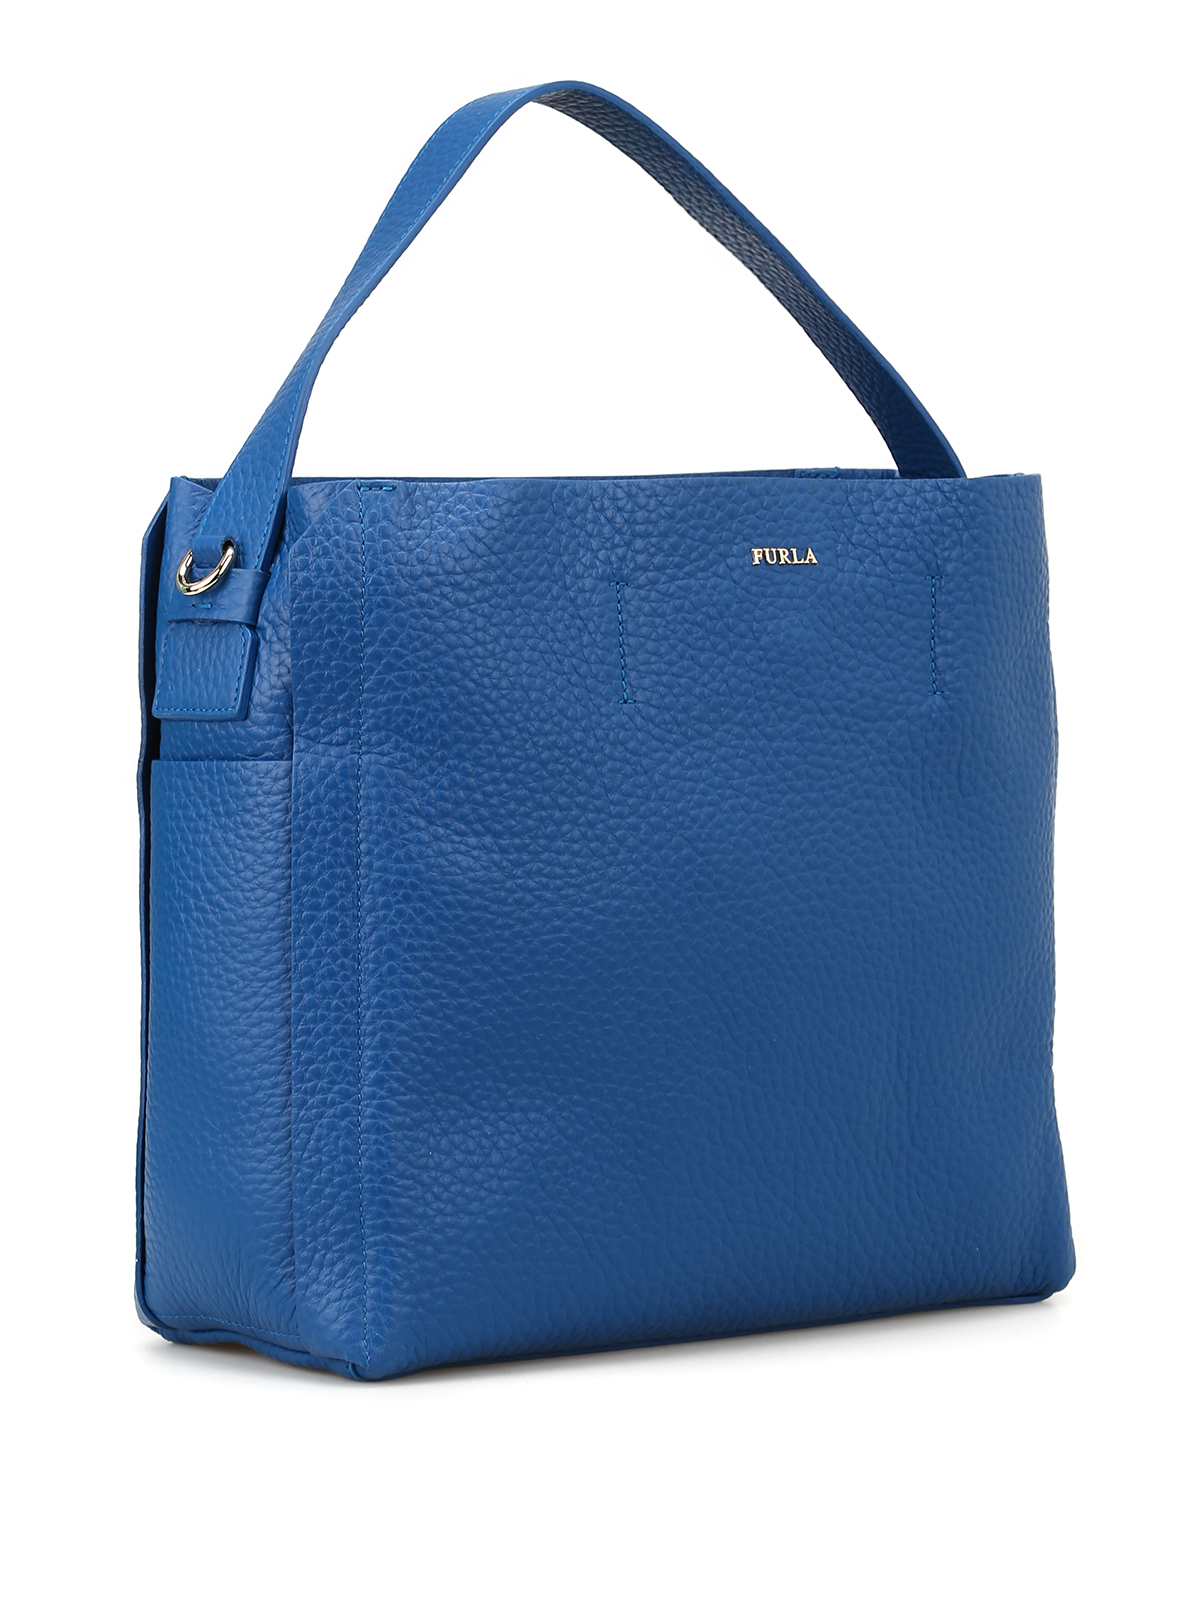 fa1d86d9773f furla-online-shoulder-bags-capriccio-m-blue-leather-hobo-bag -00000131364f00s002.jpg